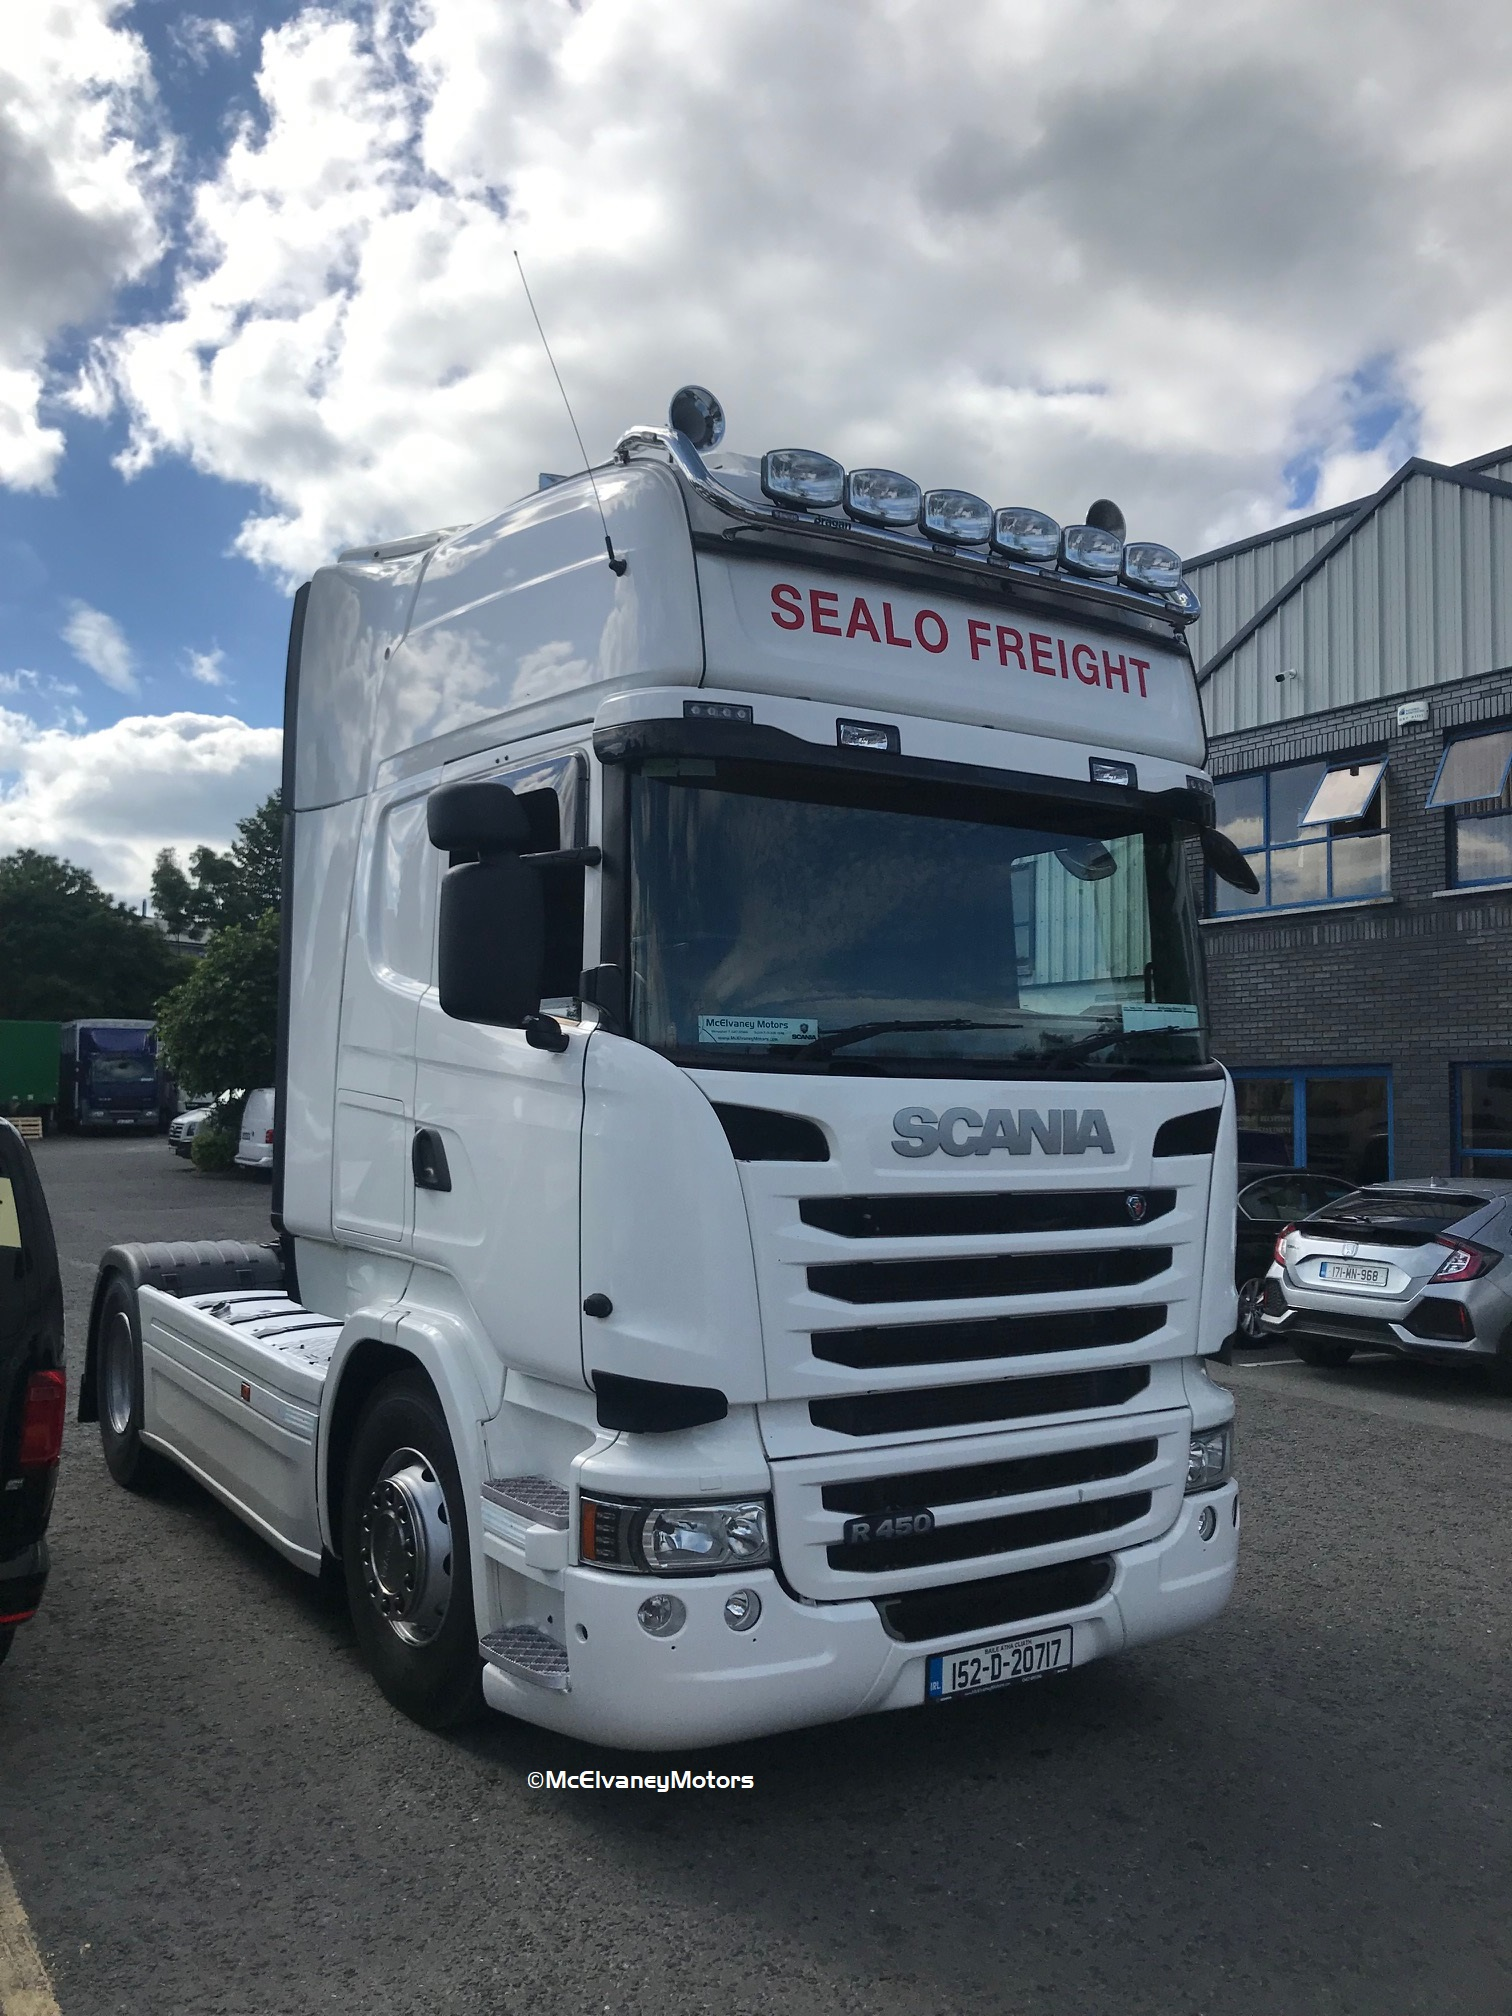 Beautiful Scania R450 for Sealo Freight